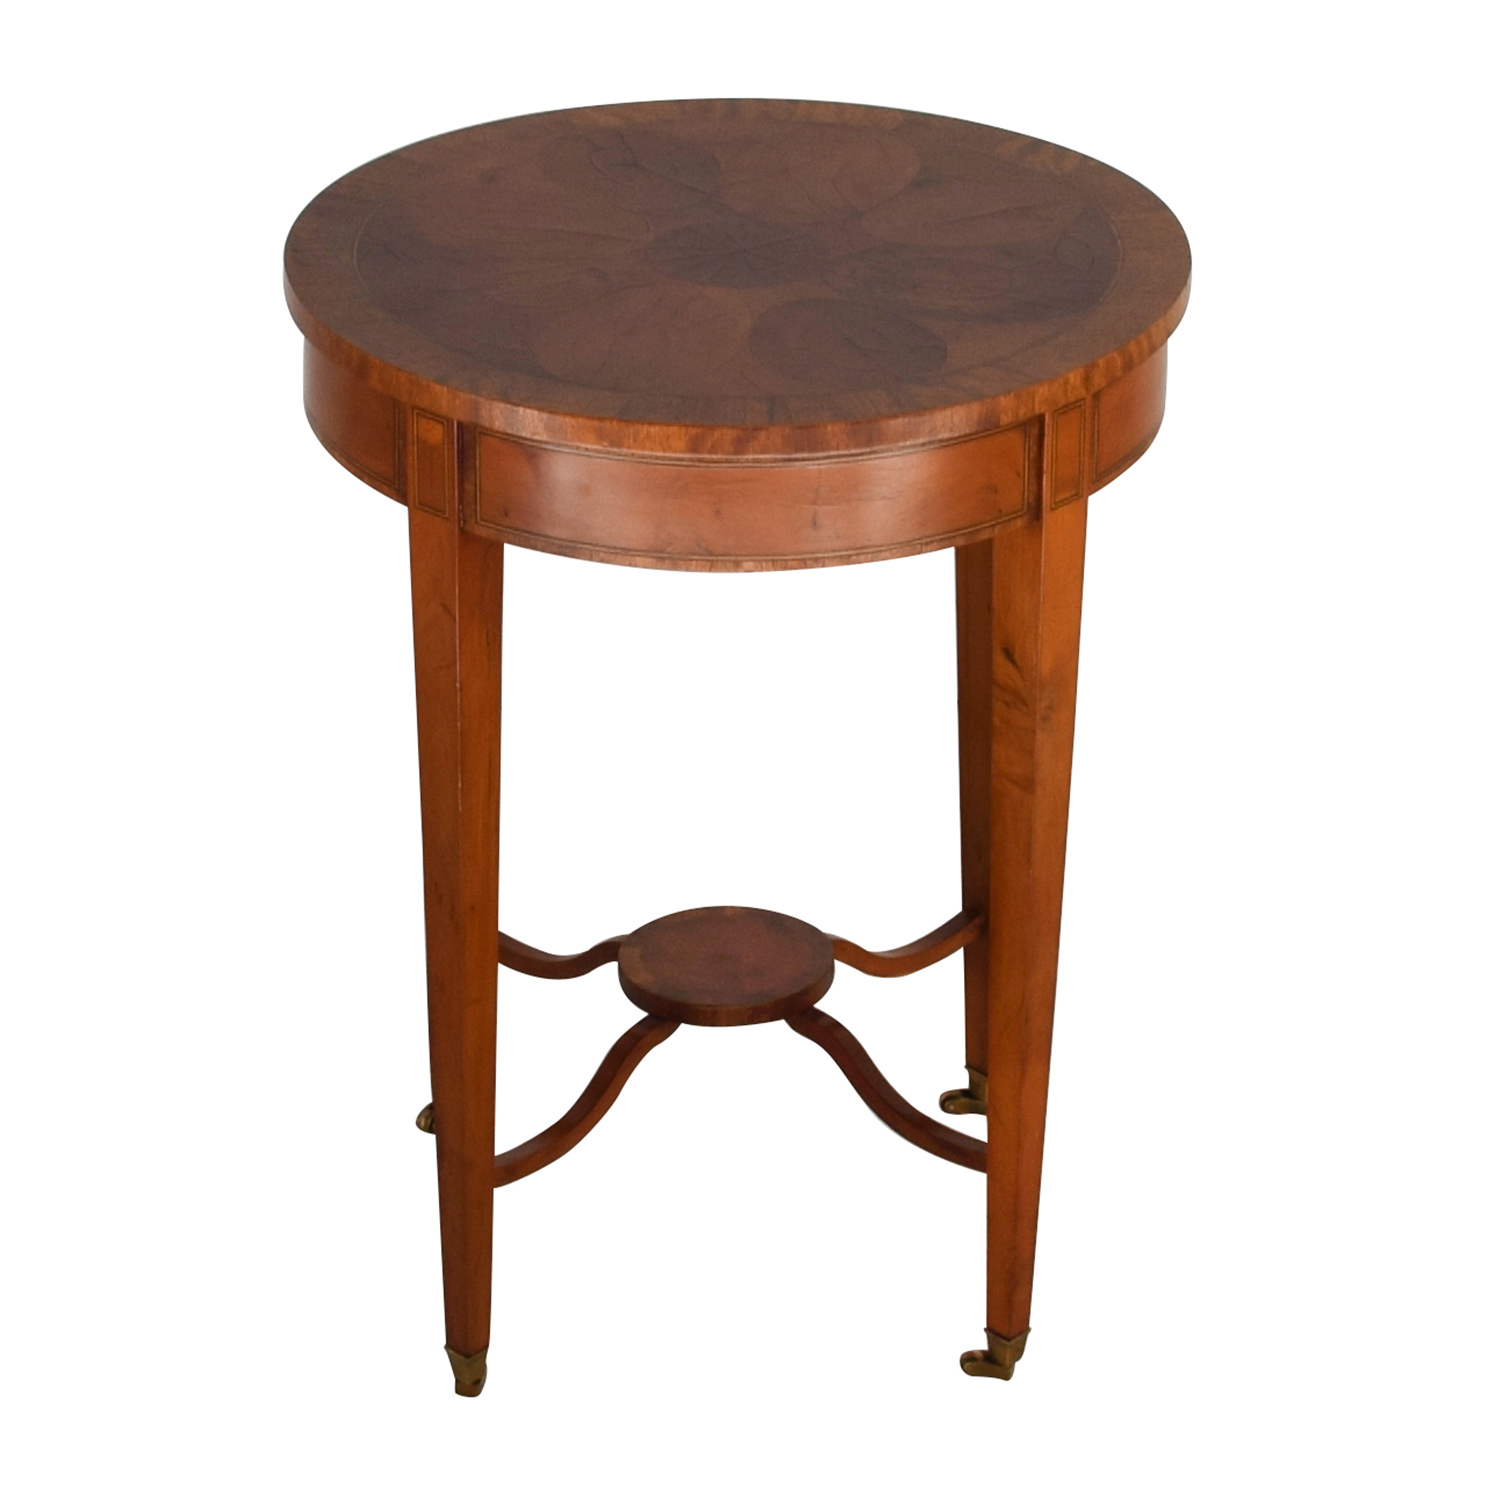 antique accent table gold off safavieh antiques inlaid wood wooden ore international square end piece coffee set tall skinny lamps bathroom wardrobe oak tables with storage